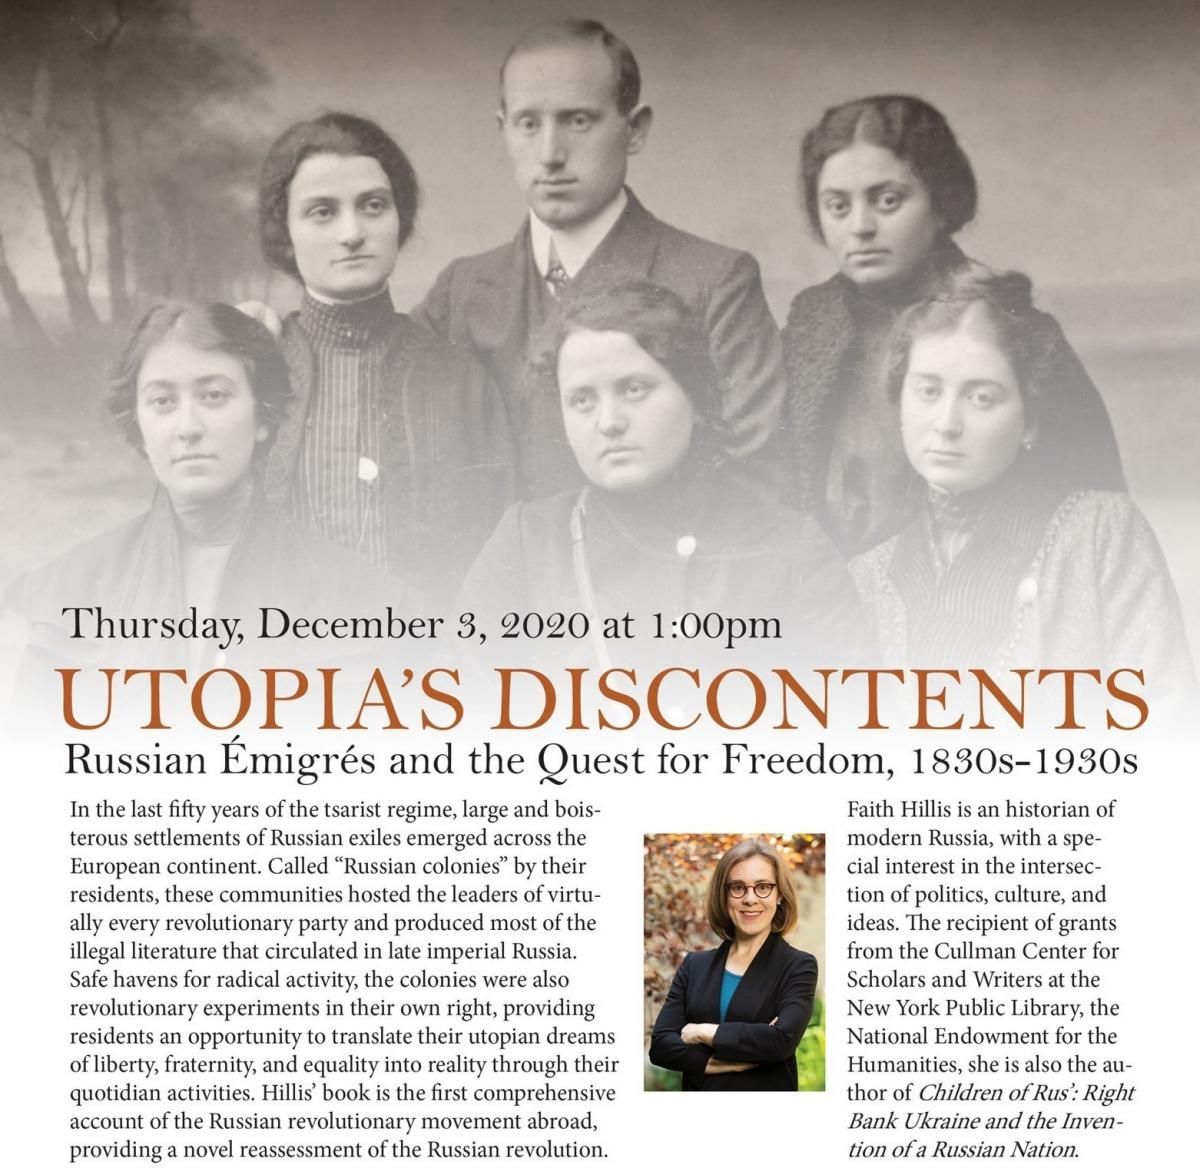 Utopia's Discontents: Russian Émigrés and the Quest for Freedom, 1830s-1930s